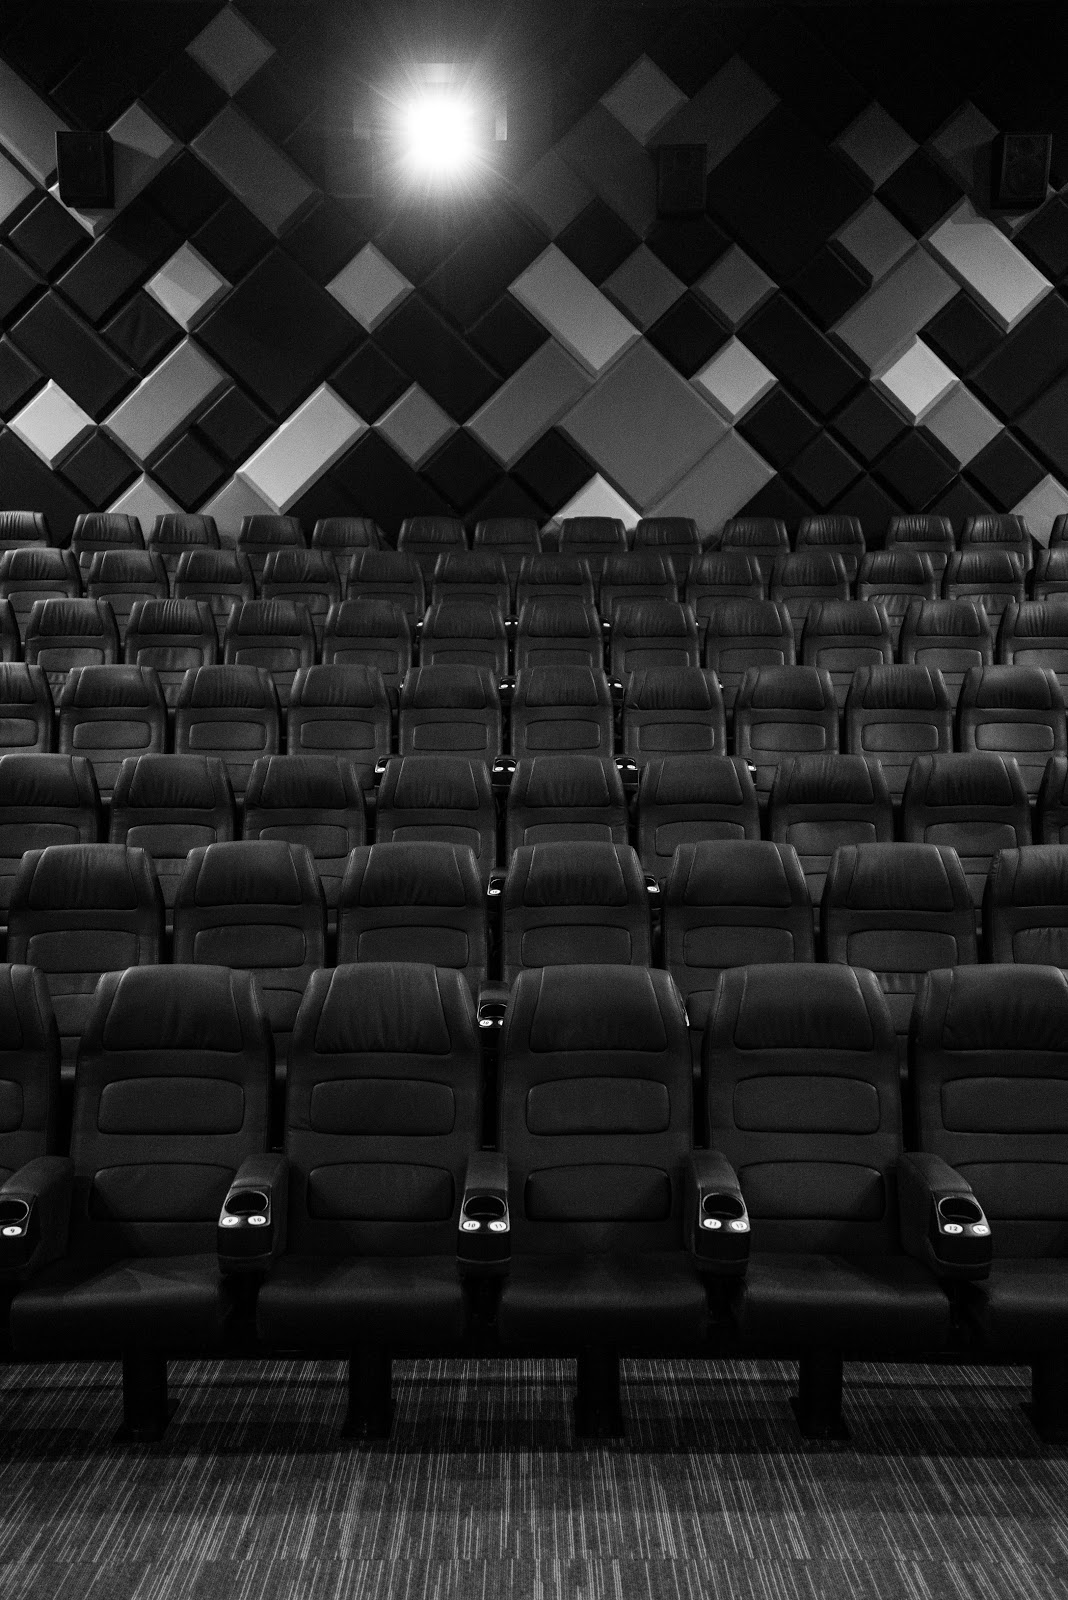 Black and white photo of an auditorium with audio panels at the back wall behind the rows of seats